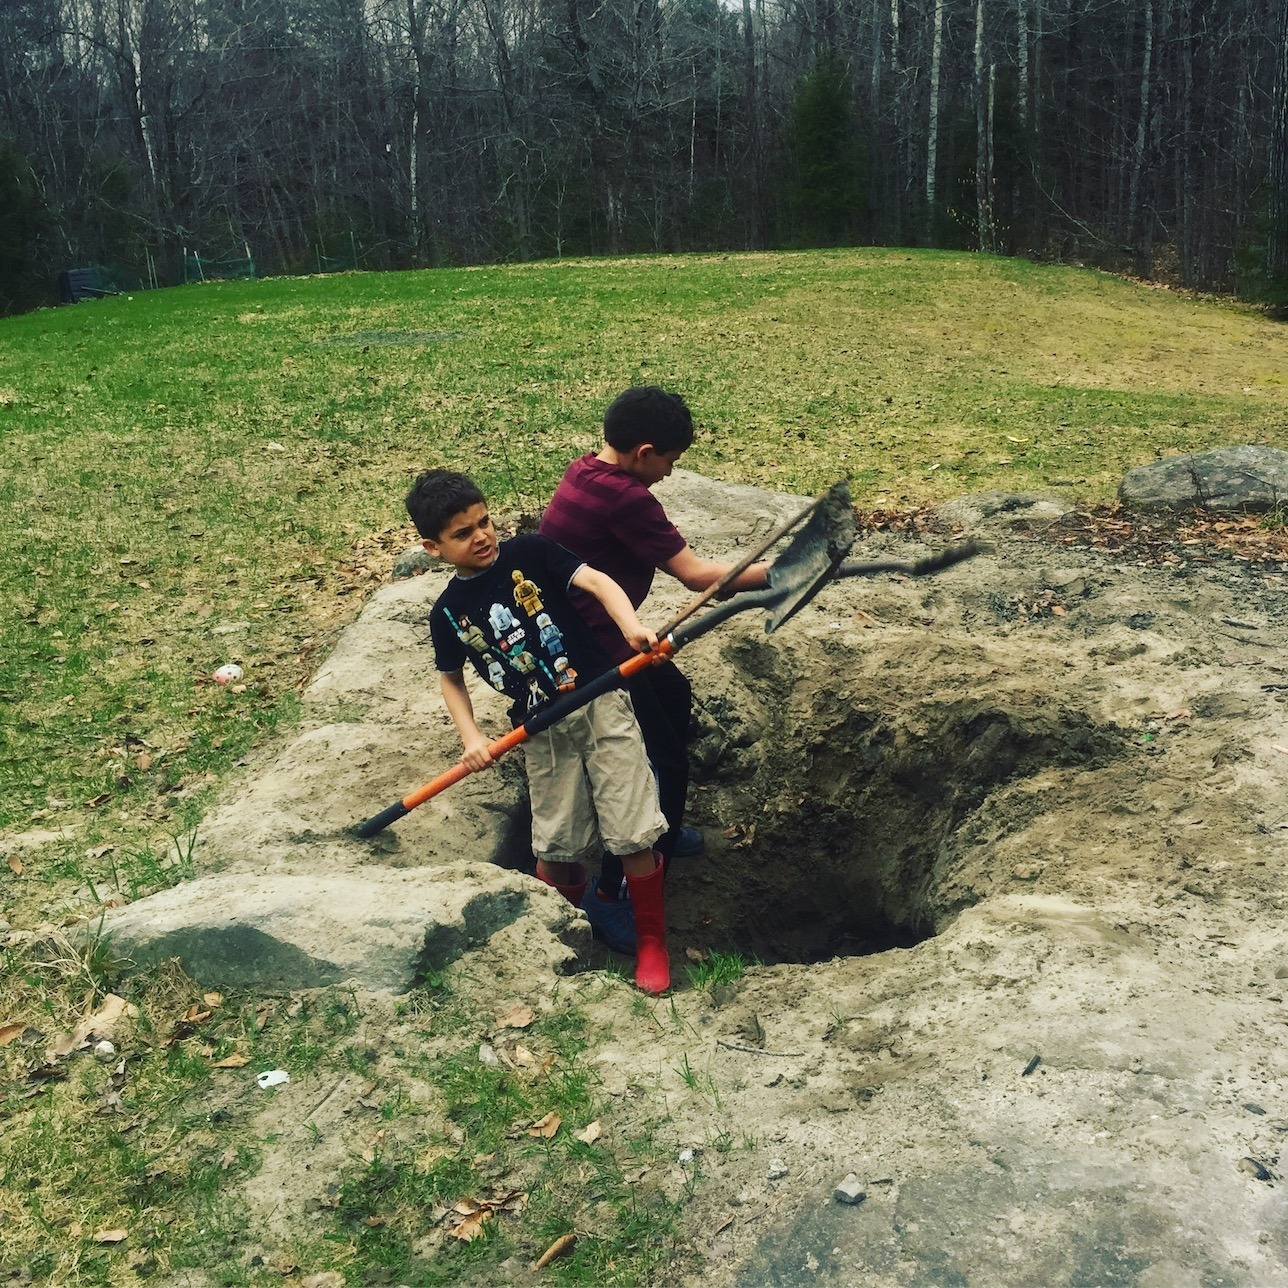 Boys digging with shovels www.thethreeyearexperiment.com